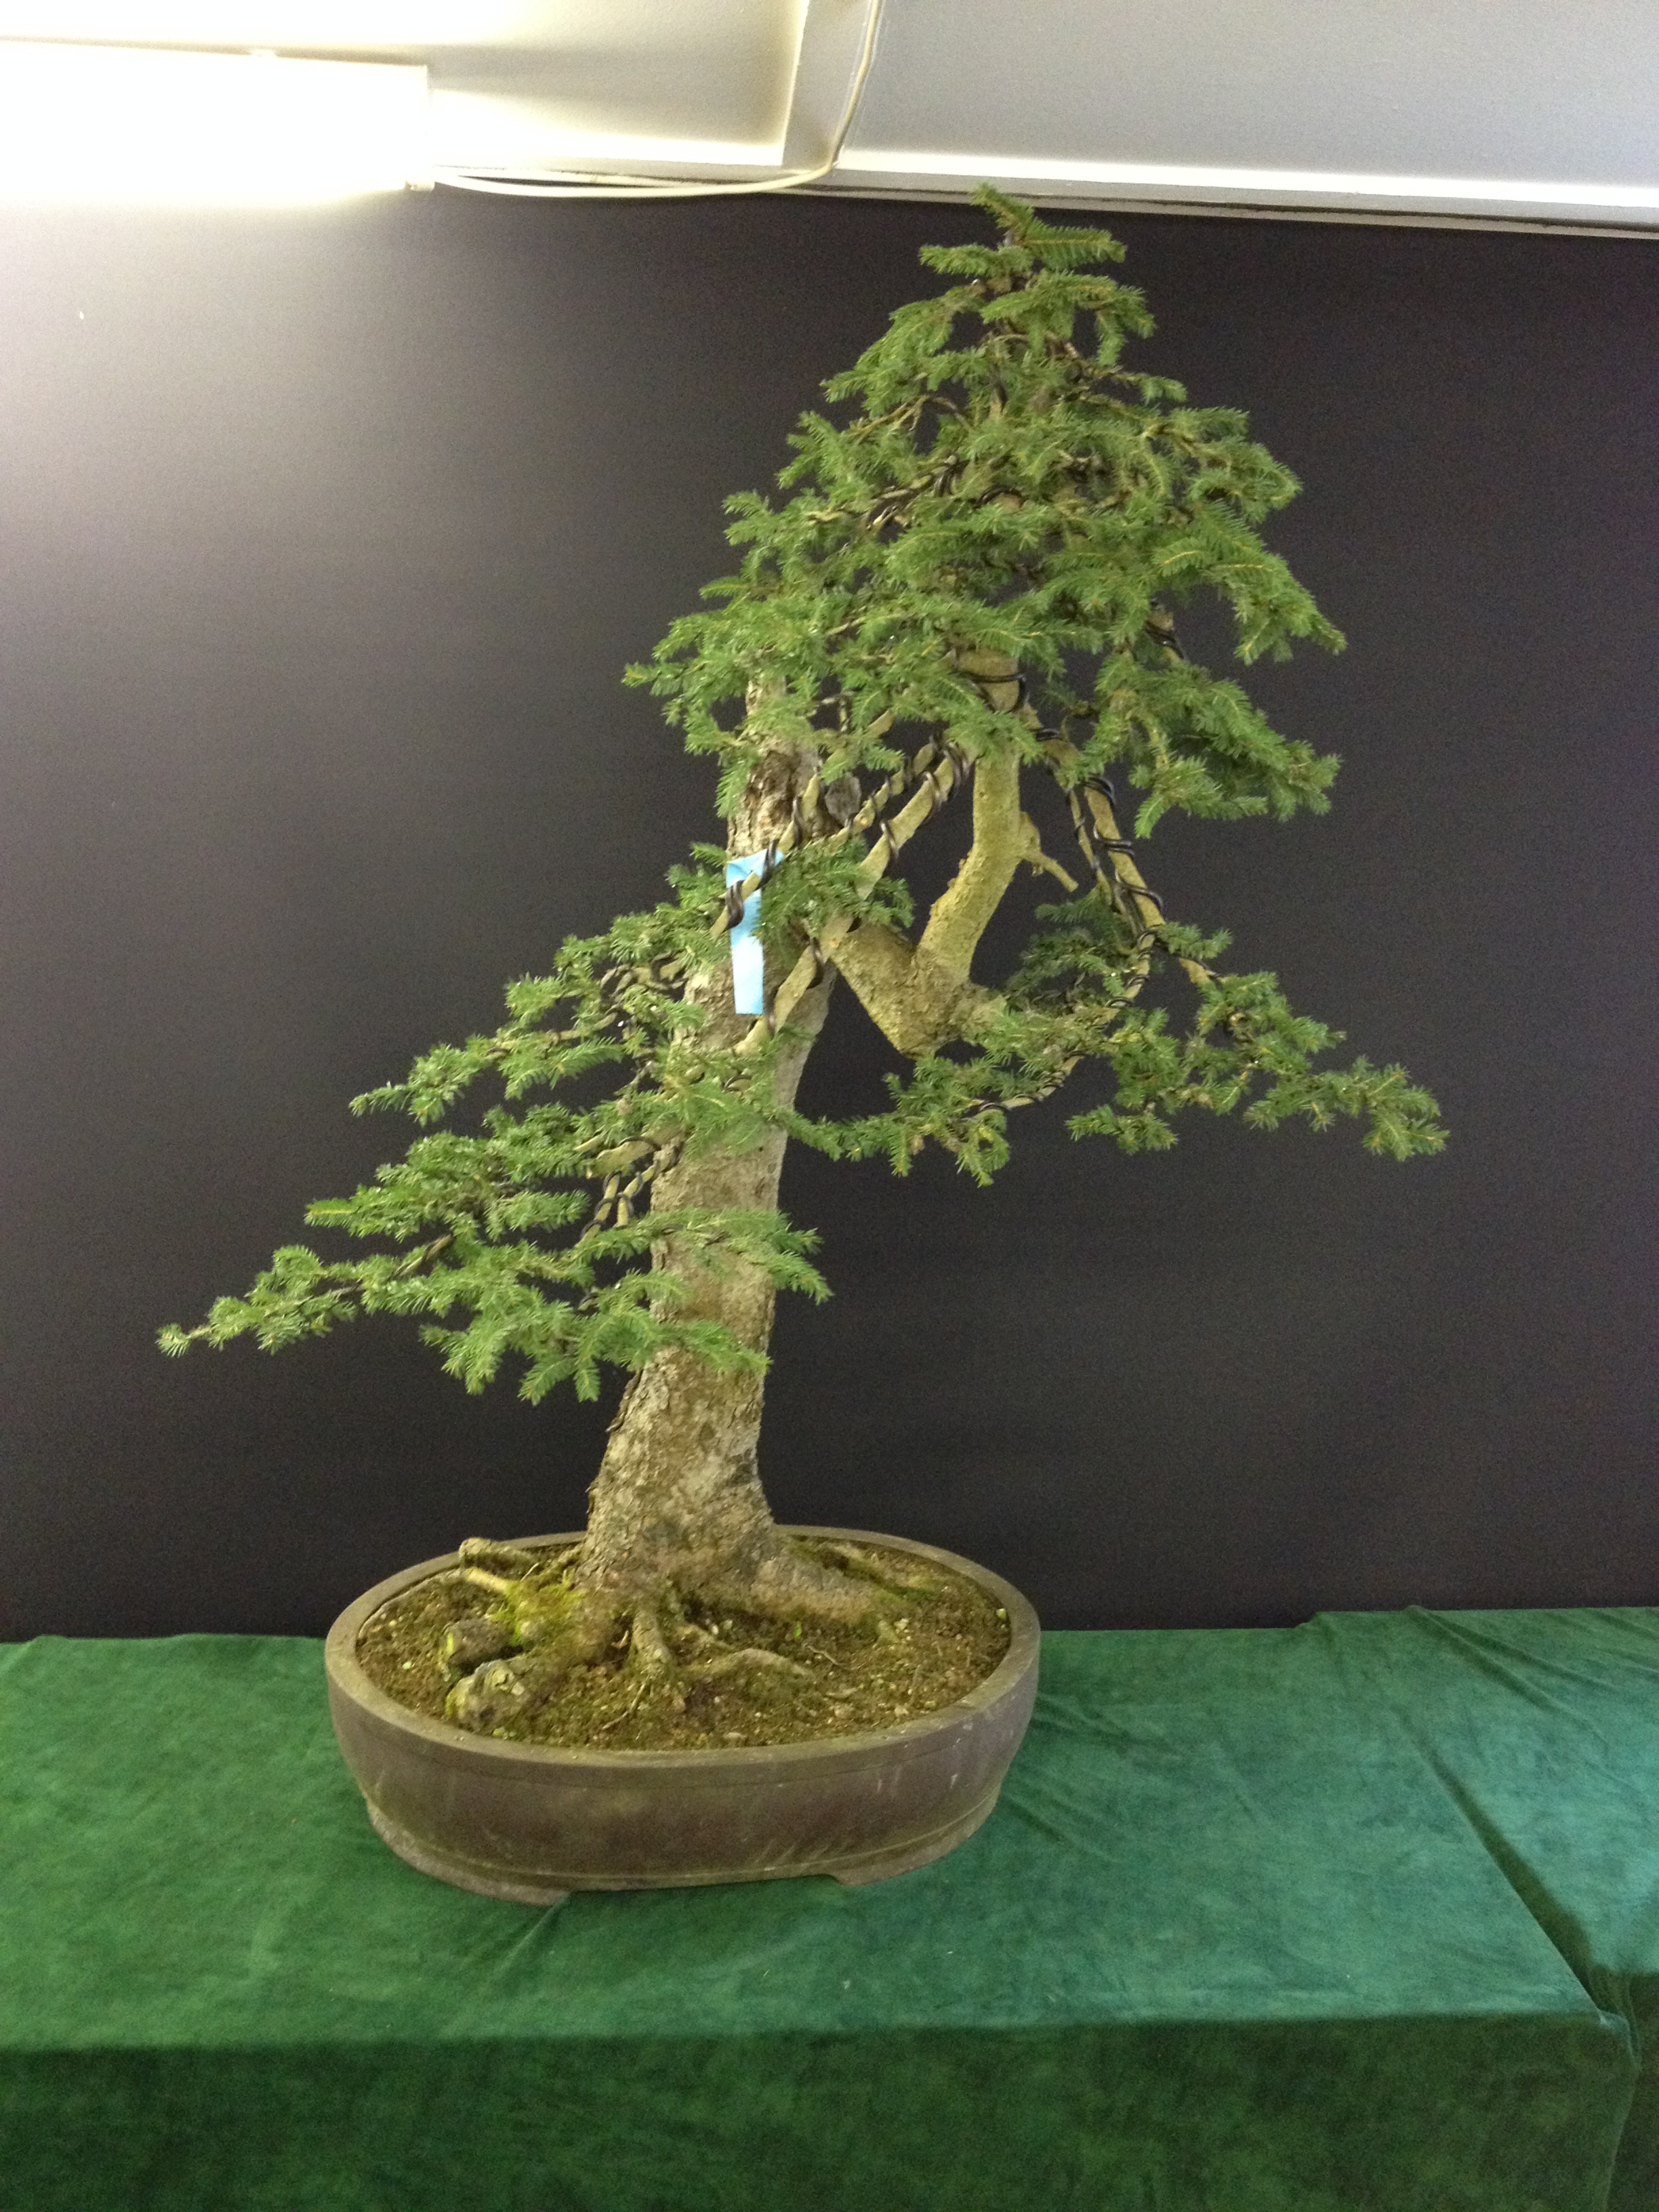 Studio Stories Some Nursery Bonsai Stylings John Hanby Wiring Your Tree This Yamadorii Spruce Appeared So Sparse That You Would Expect The To Produce A Very Basic Shape But Where Does Extra Foliage Come From